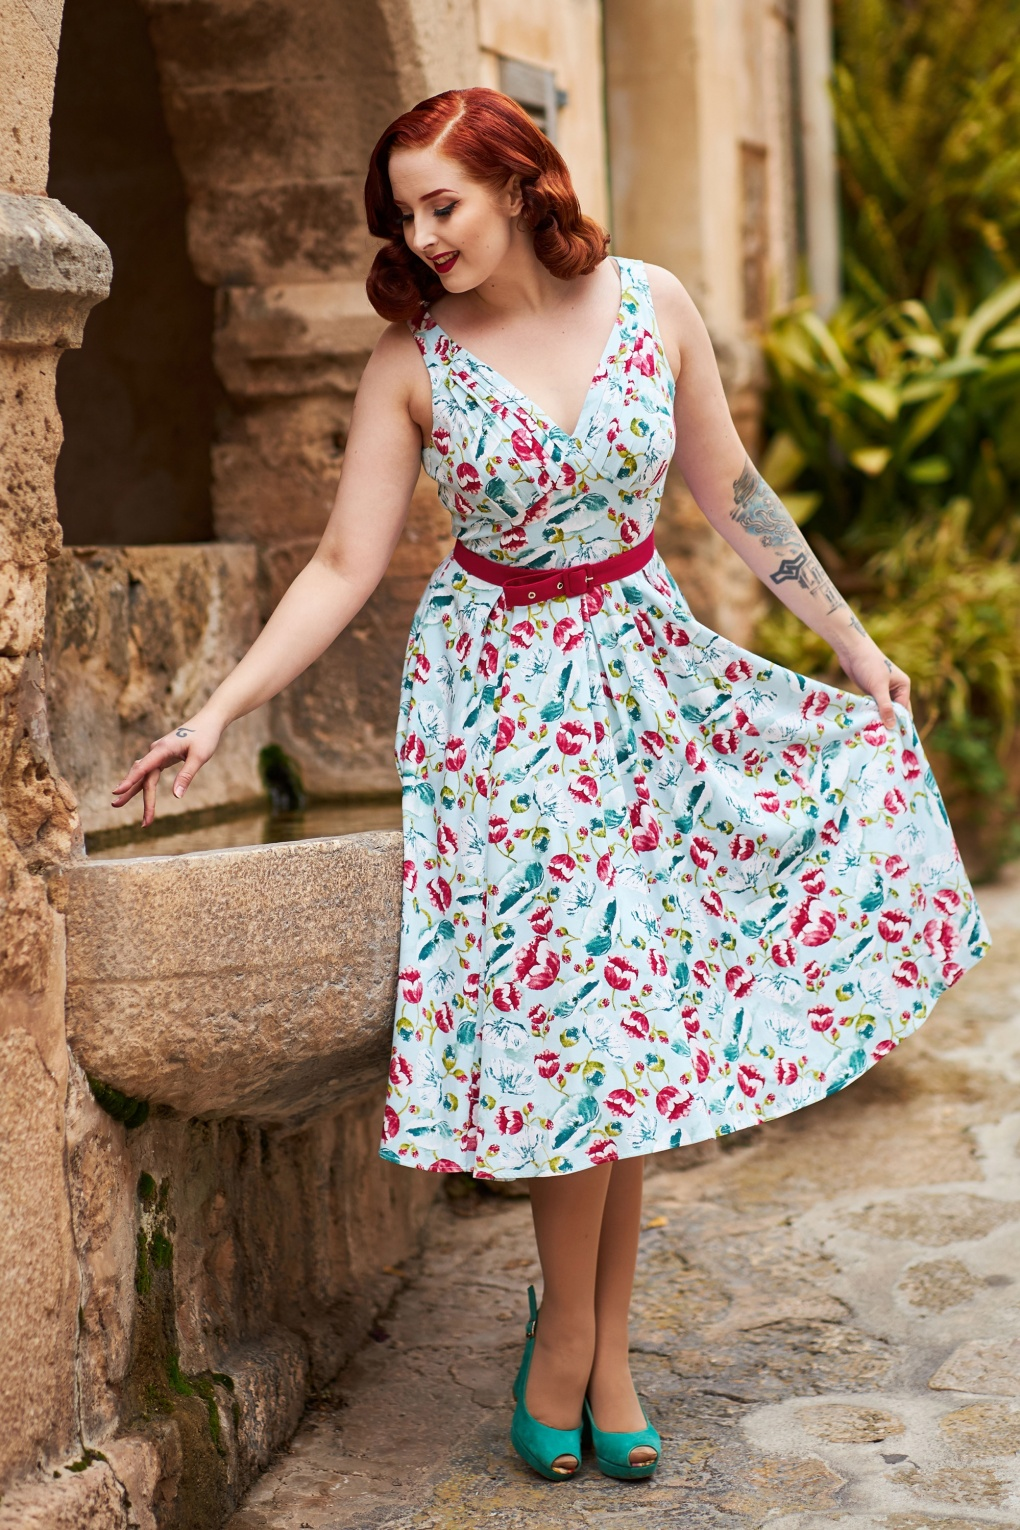 1950s Swing Dresses | 50s Swing Dress 50s Bassie Regina Floral Swing Dress in Light Blue £107.43 AT vintagedancer.com